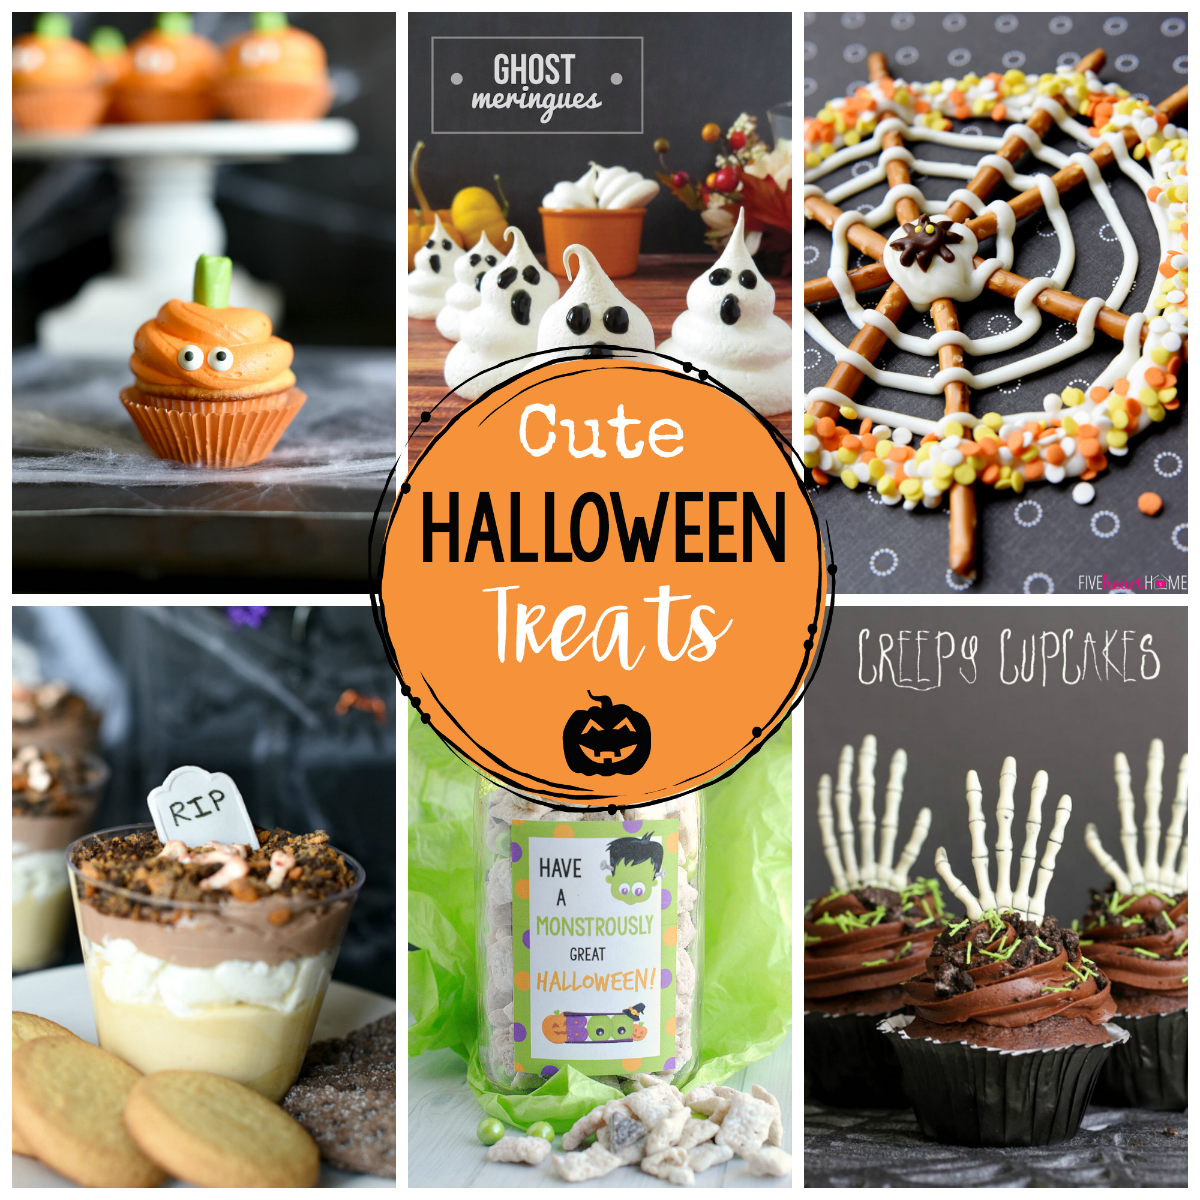 Cute & Easy Halloween Treats and Food Ideas